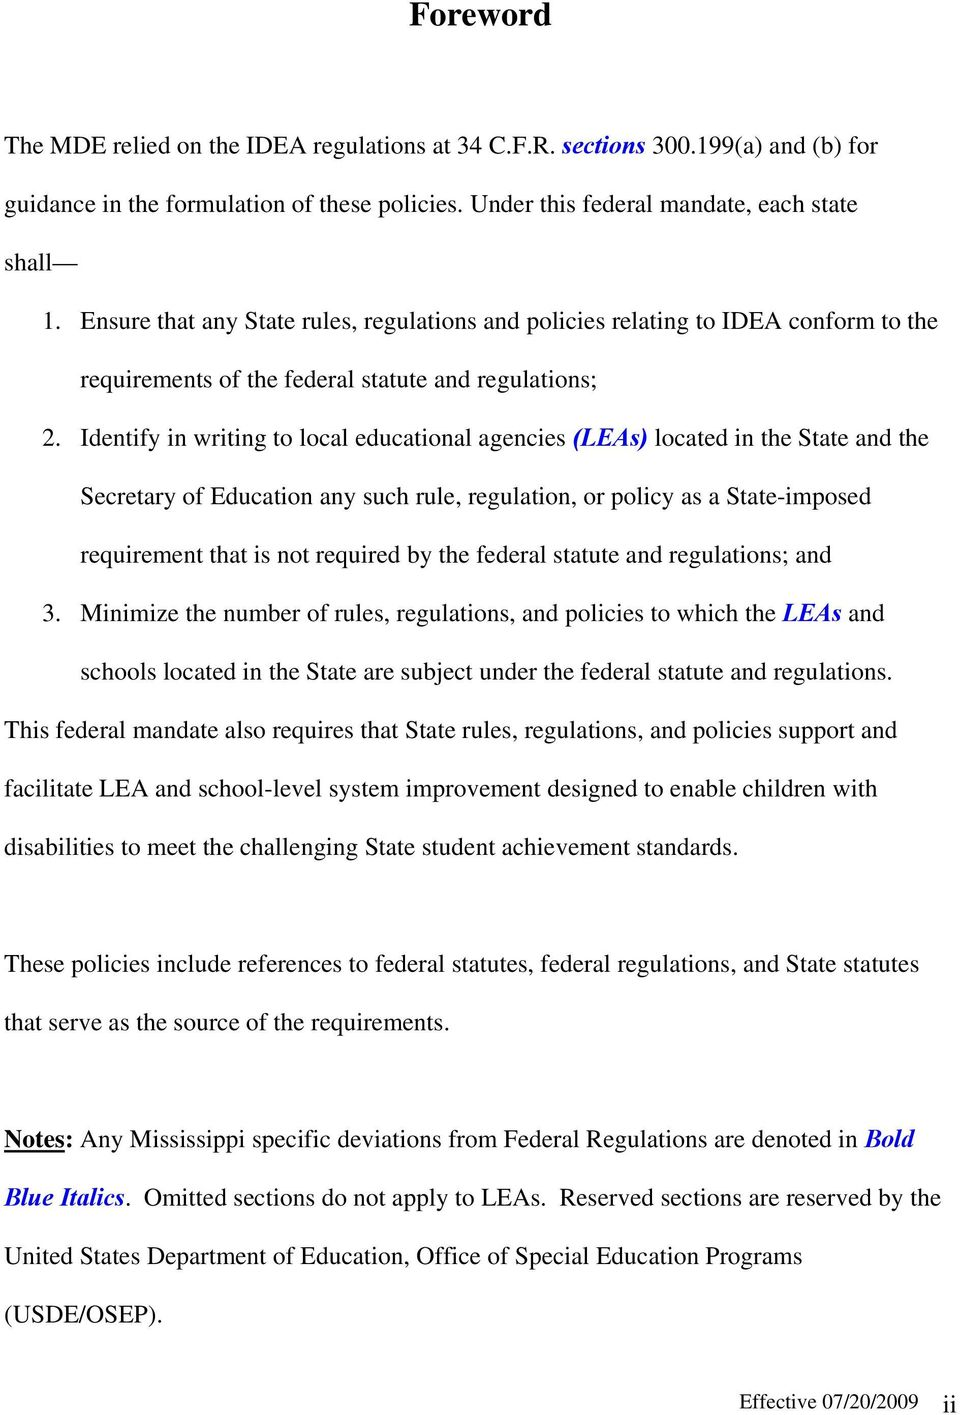 Identify in writing to local educational agencies (LEAs) located in the State and the Secretary of Education any such rule, regulation, or policy as a State-imposed requirement that is not required